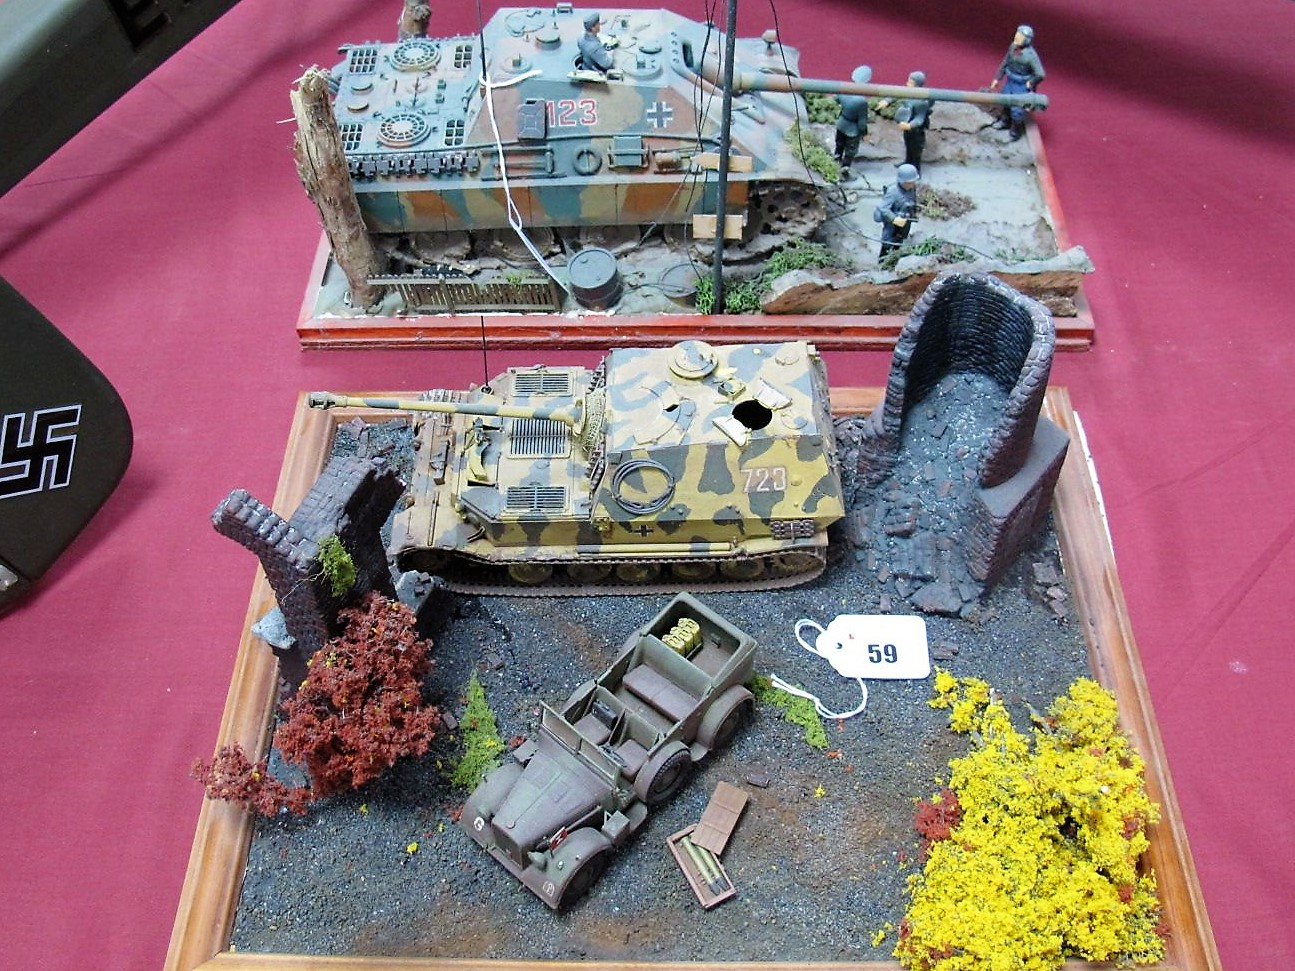 Lot 59 - Two Highly Detailed and Very Well Built Second World War Dioramas, one depicting a Panzer tank at